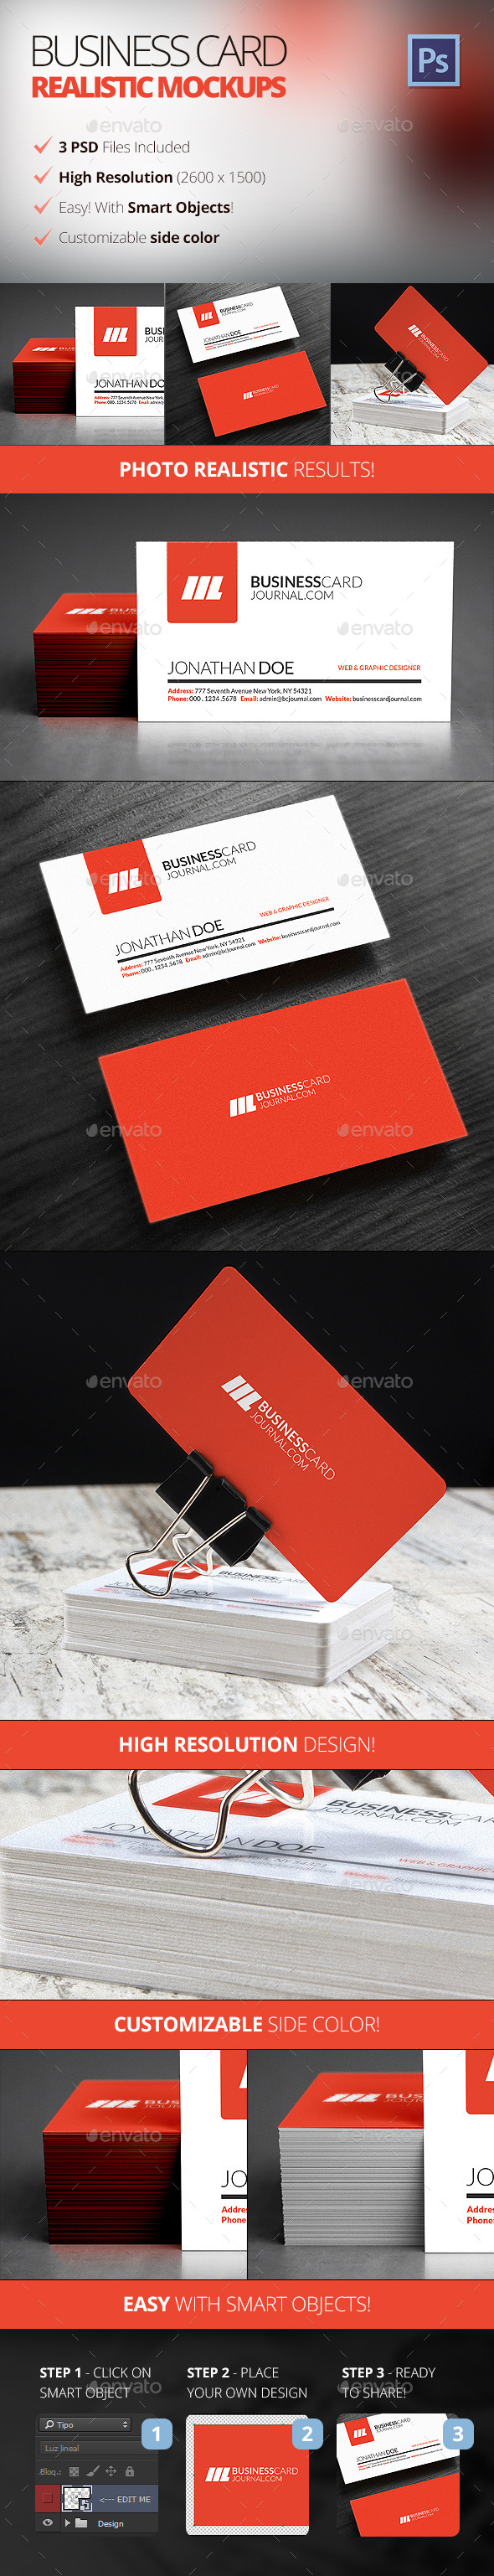 Photo Realistic Business Card Mockups - Business Cards Print